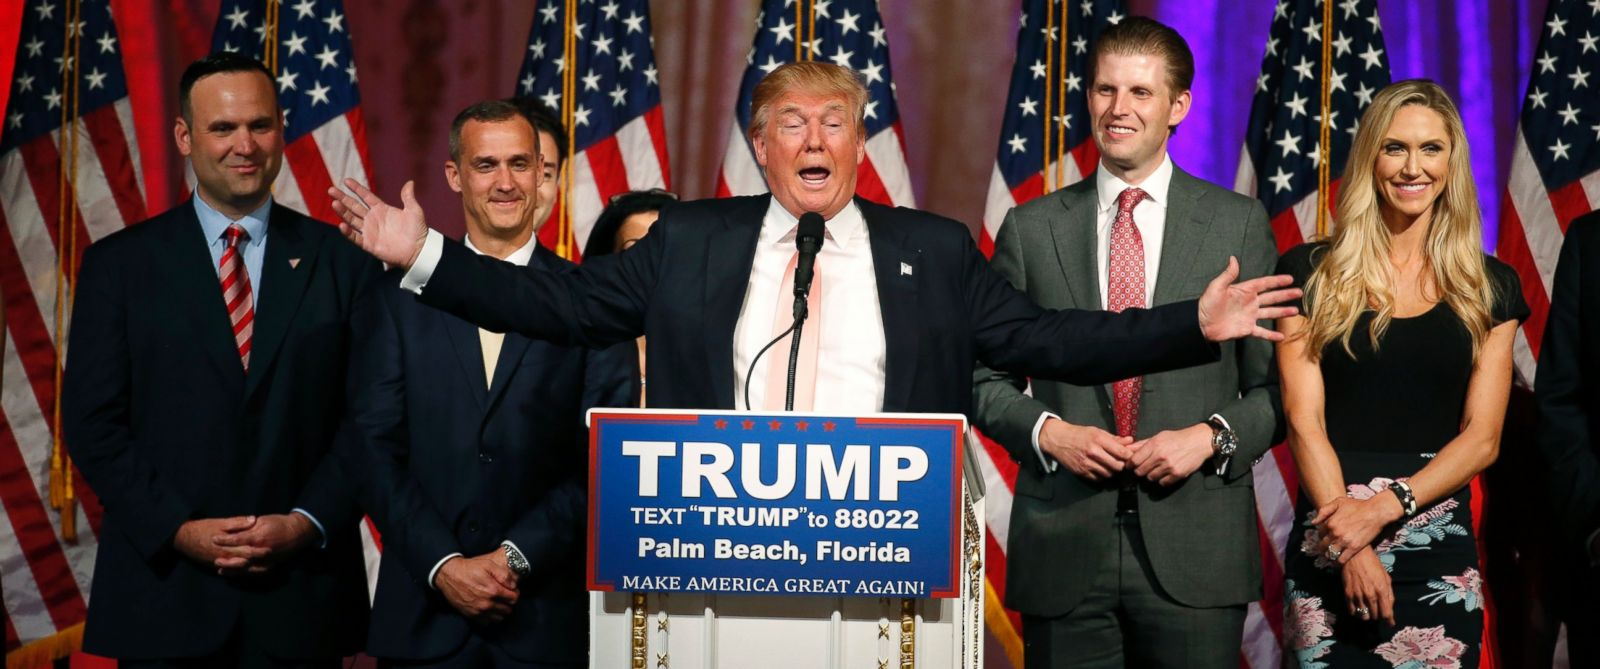 PHOTO: Republican presidential candidate Donald Trump addresses the media following victory in the Florida state primary on March 15, 2016 in West Palm Beach, Florida.